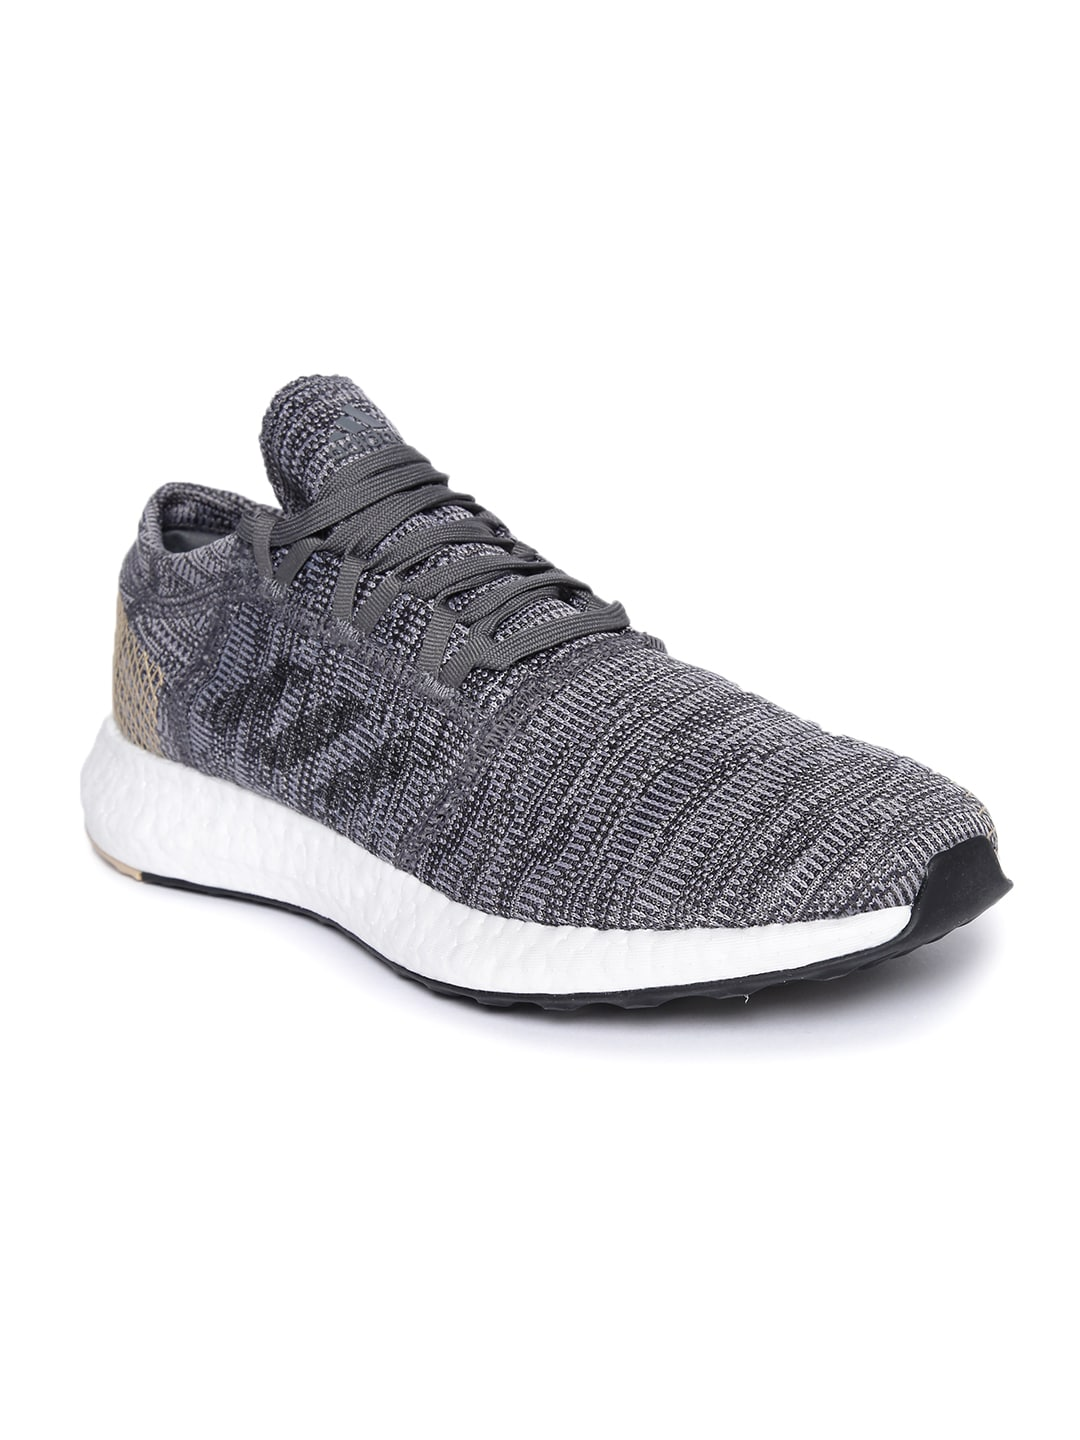 01227ca4be21e Adidas Pureboost Zg Prime Grey Running Shoes for Men online in India ...